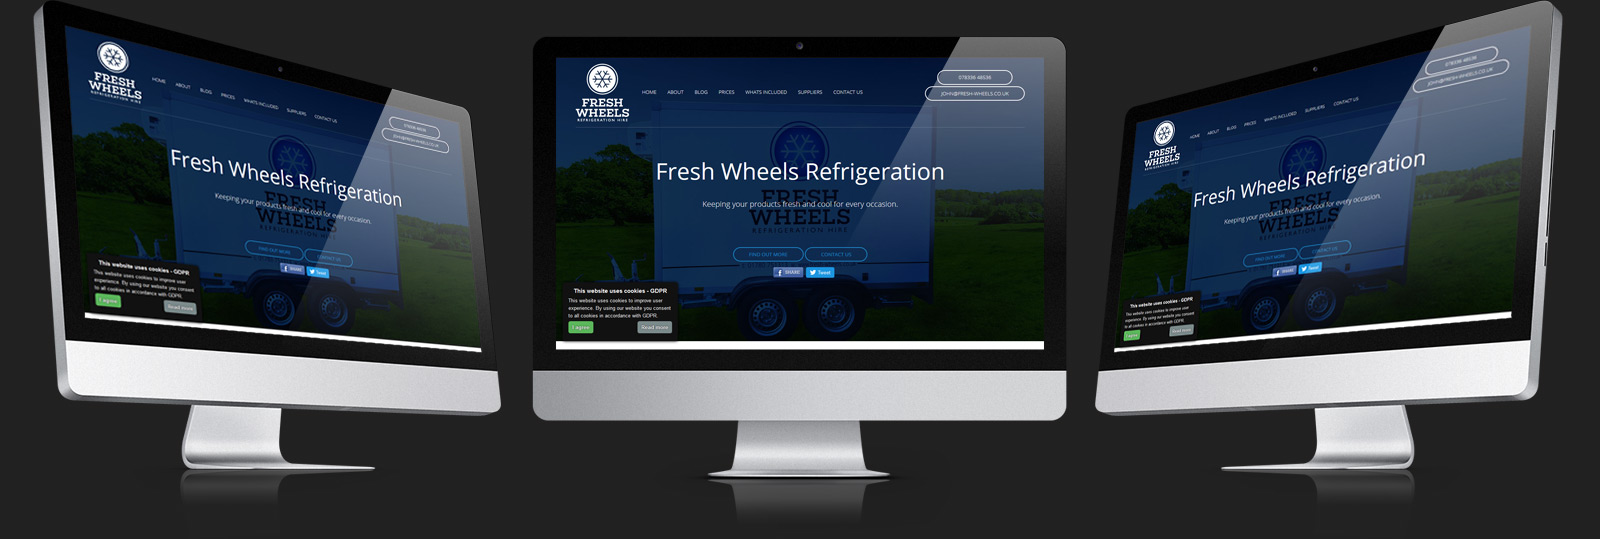 Stamford Web Design - Fresh Wheels Refrigeration